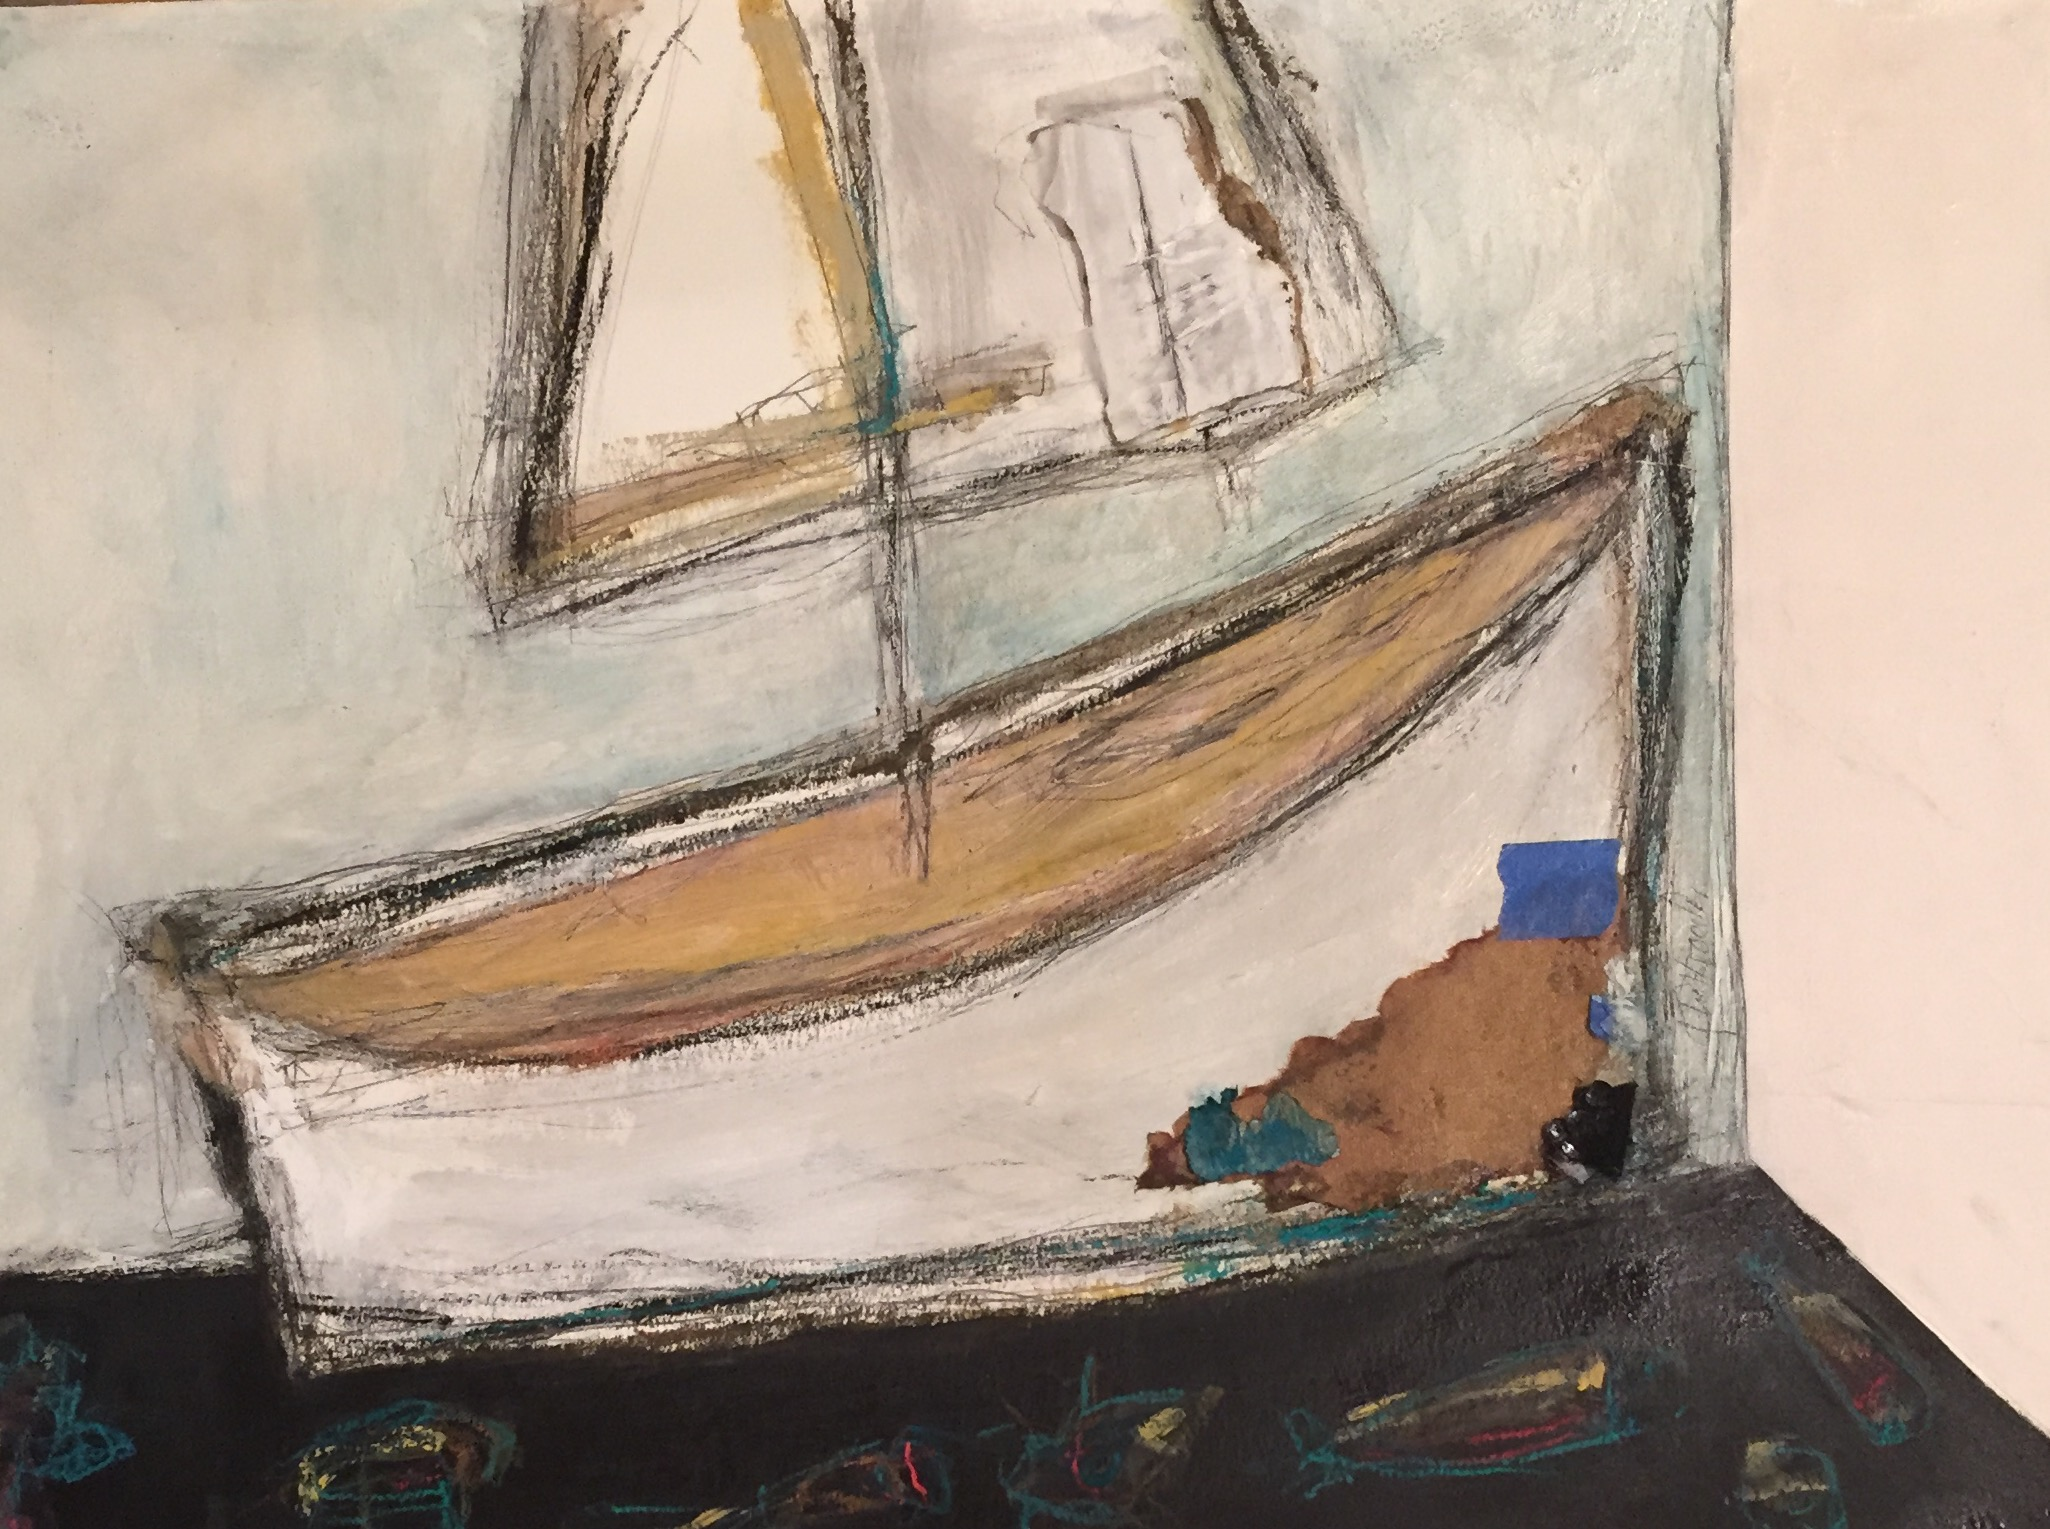 """A Boat for Liam , oil, acrylic, pencil, crayon, tar, cardboard, vintage paper, painters tape, sequins and shellac on paper, 20"""" x 26"""" framed, sold"""